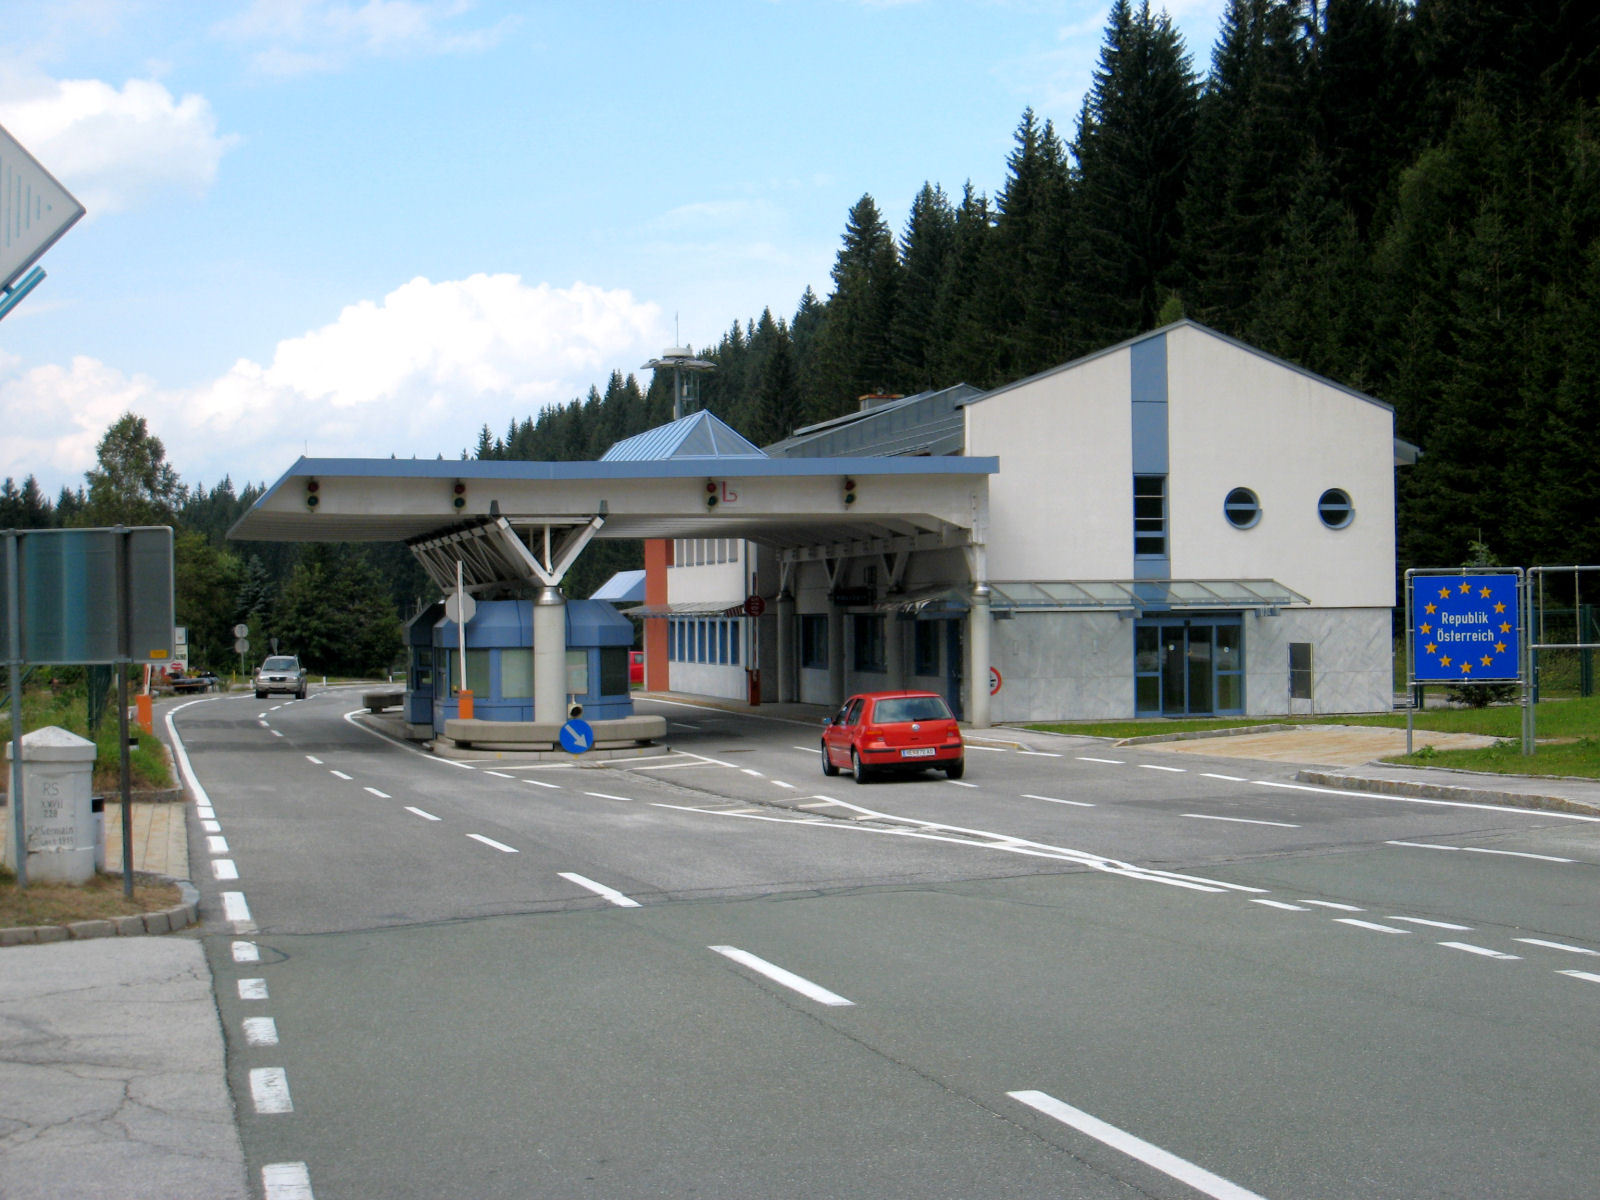 The Austrian sign and border post at the Wurzen Pass